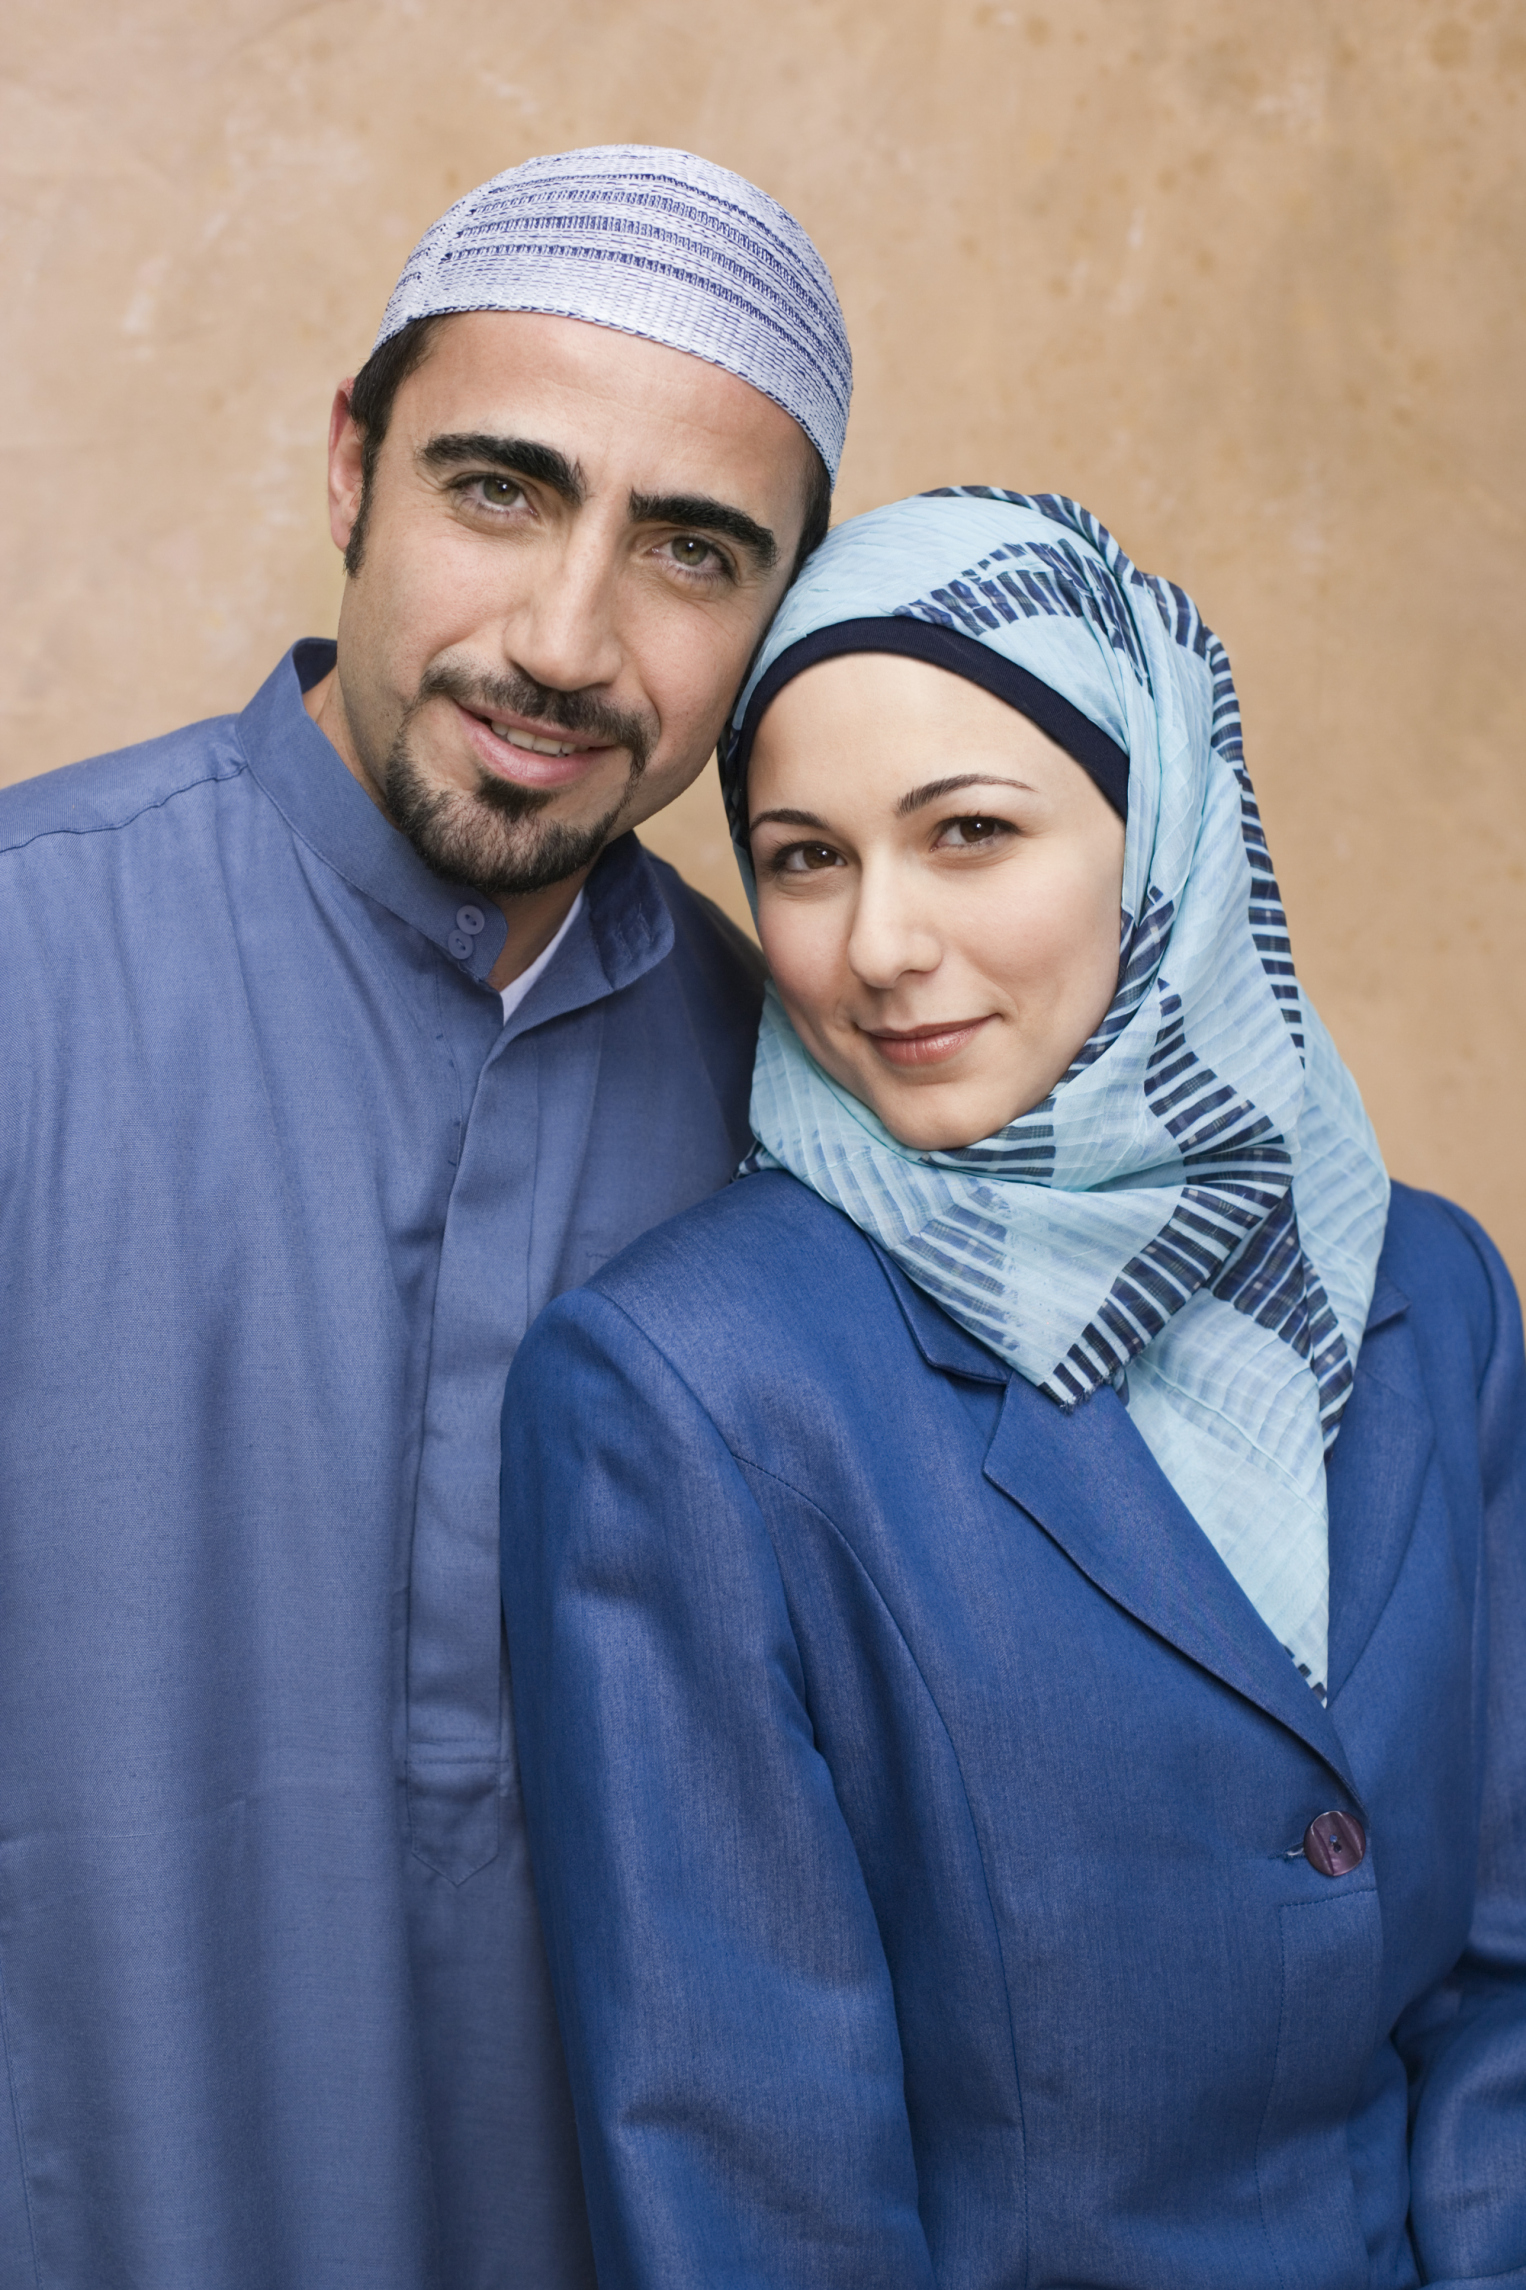 Rules & Obligations of a Muslim Marriage